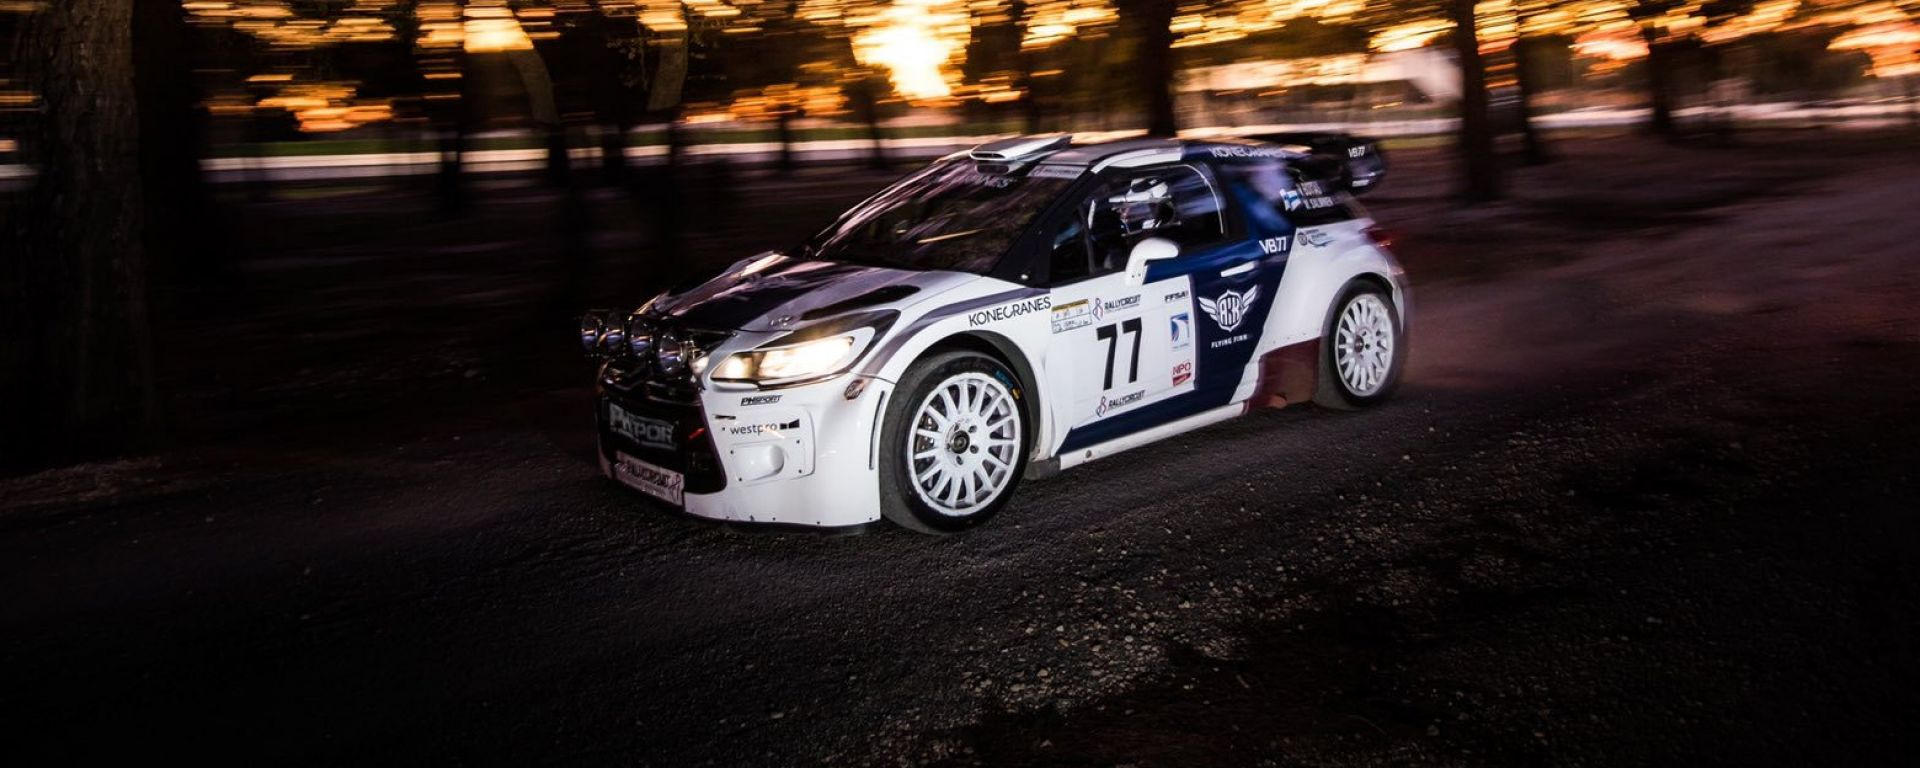 Rally Paul Ricard, Valtteri Bottas (Citroen DS3 WRC)